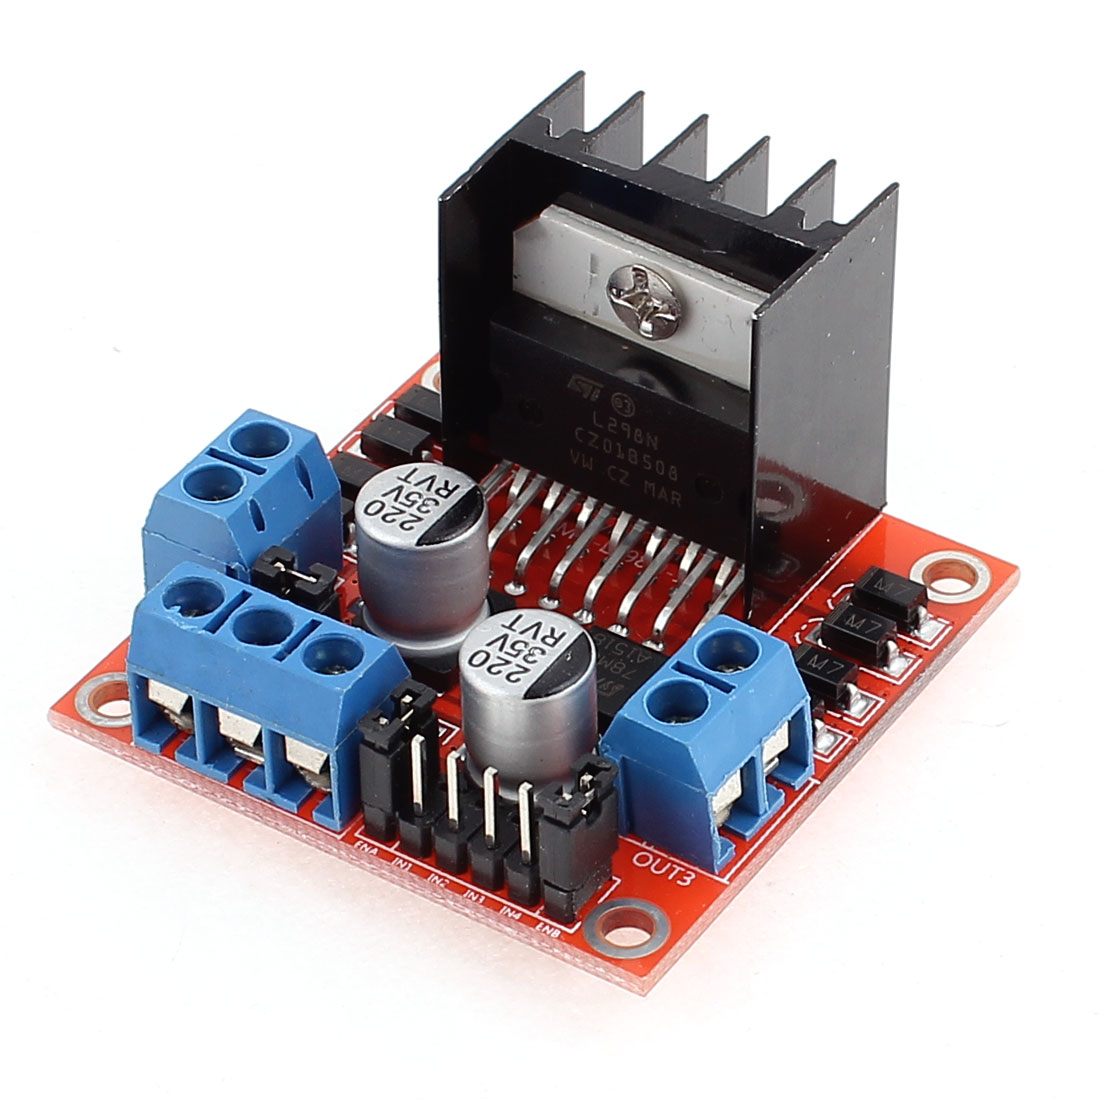 Microcontroller L298N Chip Stepper Motor Driver Module Board Red - image 2 of 4